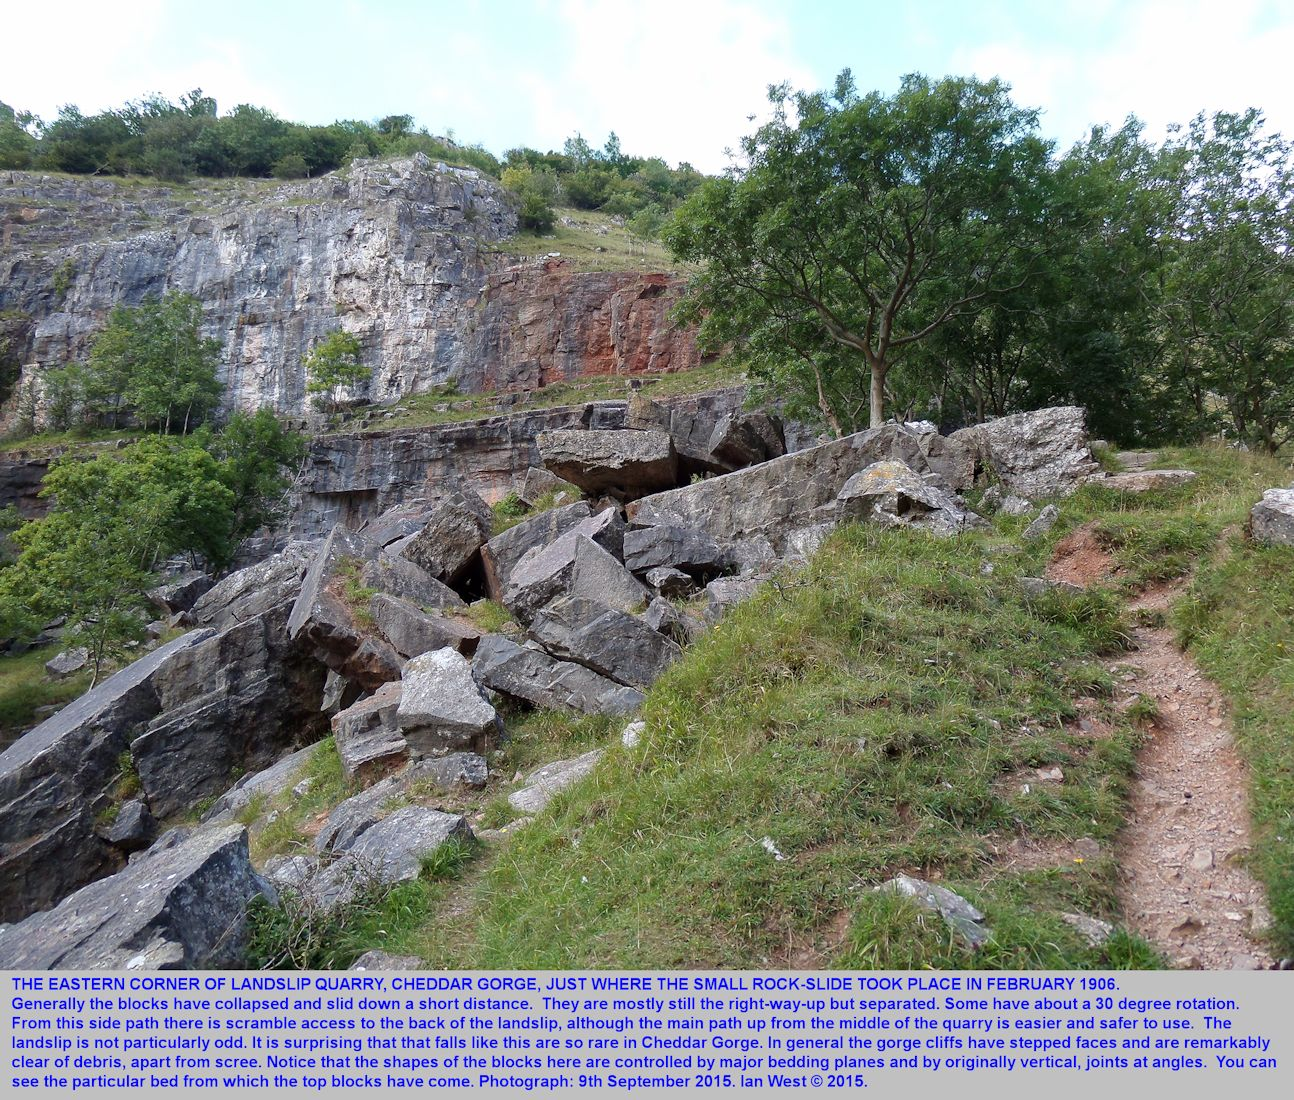 The fallen slabs at Landslip Quarry, Cheddar Gorge, Mendip Hills, Somerset, seen from close up on the adjacent path